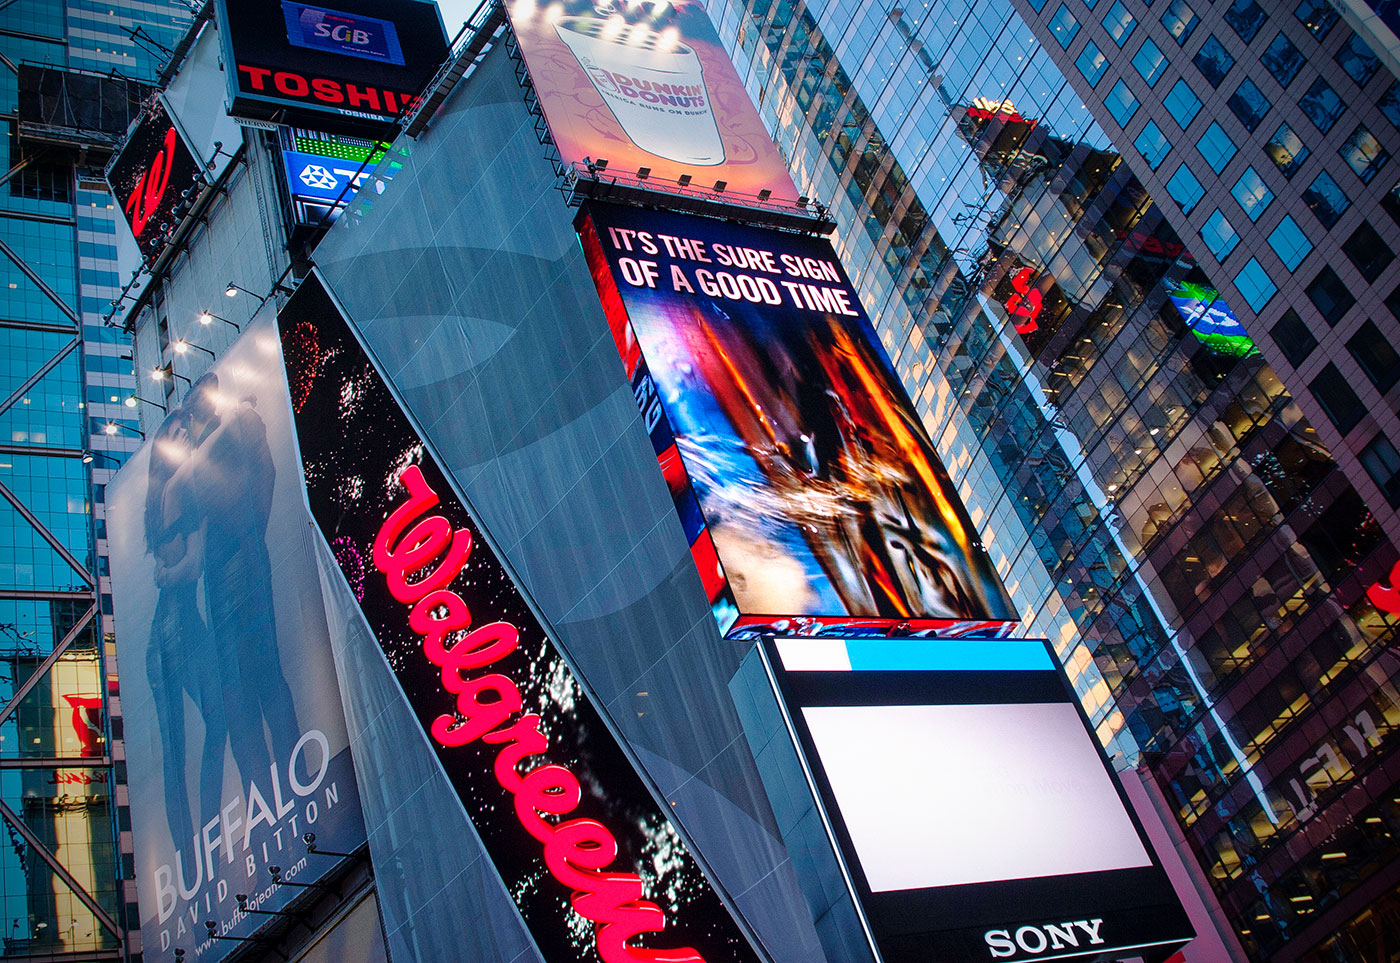 Photography on a Budget - Times Square Photo